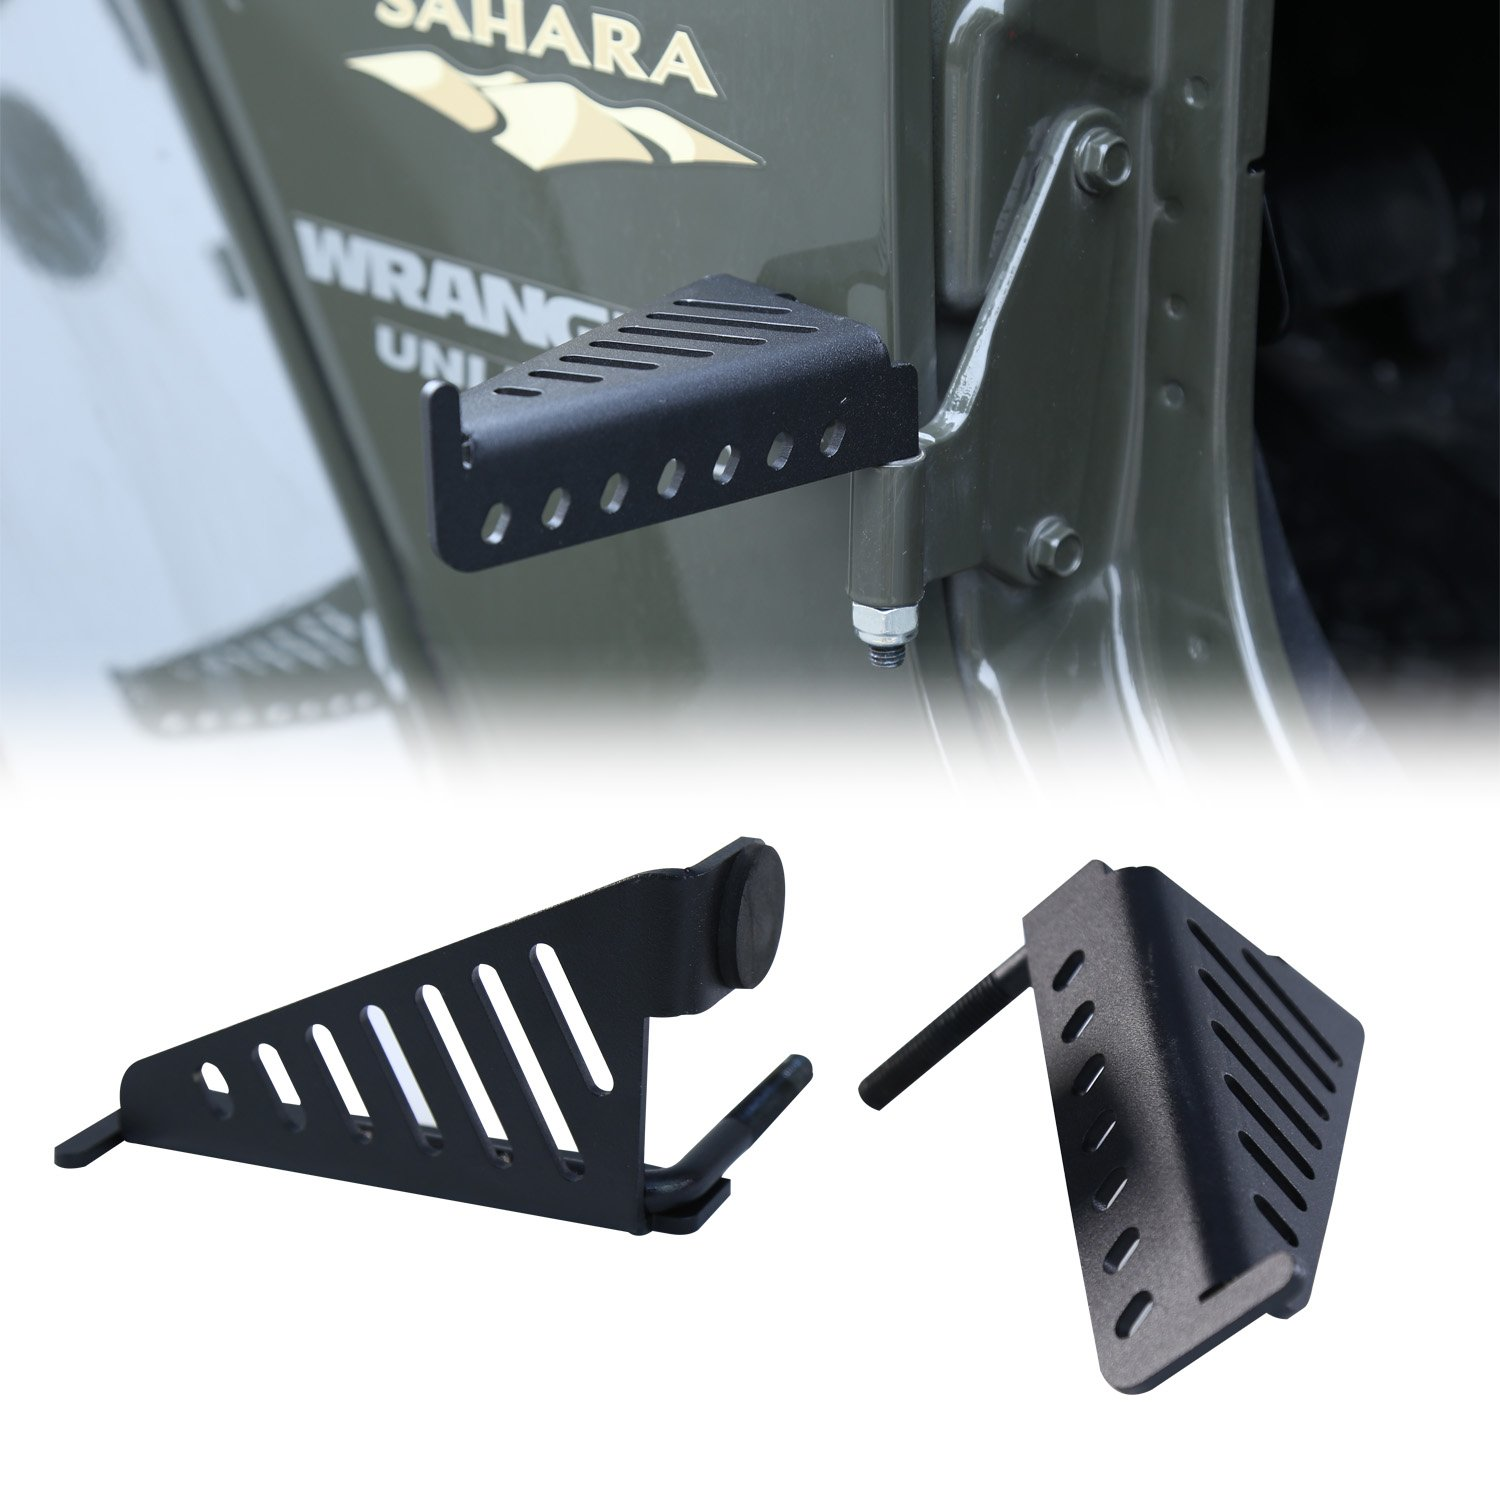 Grill Style 2pcs in 1pack CT043 cartaoo Foot Pegs Solid Steel Black Foot Rest Kick Panel for 2007-2018 Jeep Wrangler JK /& Unlimited JL